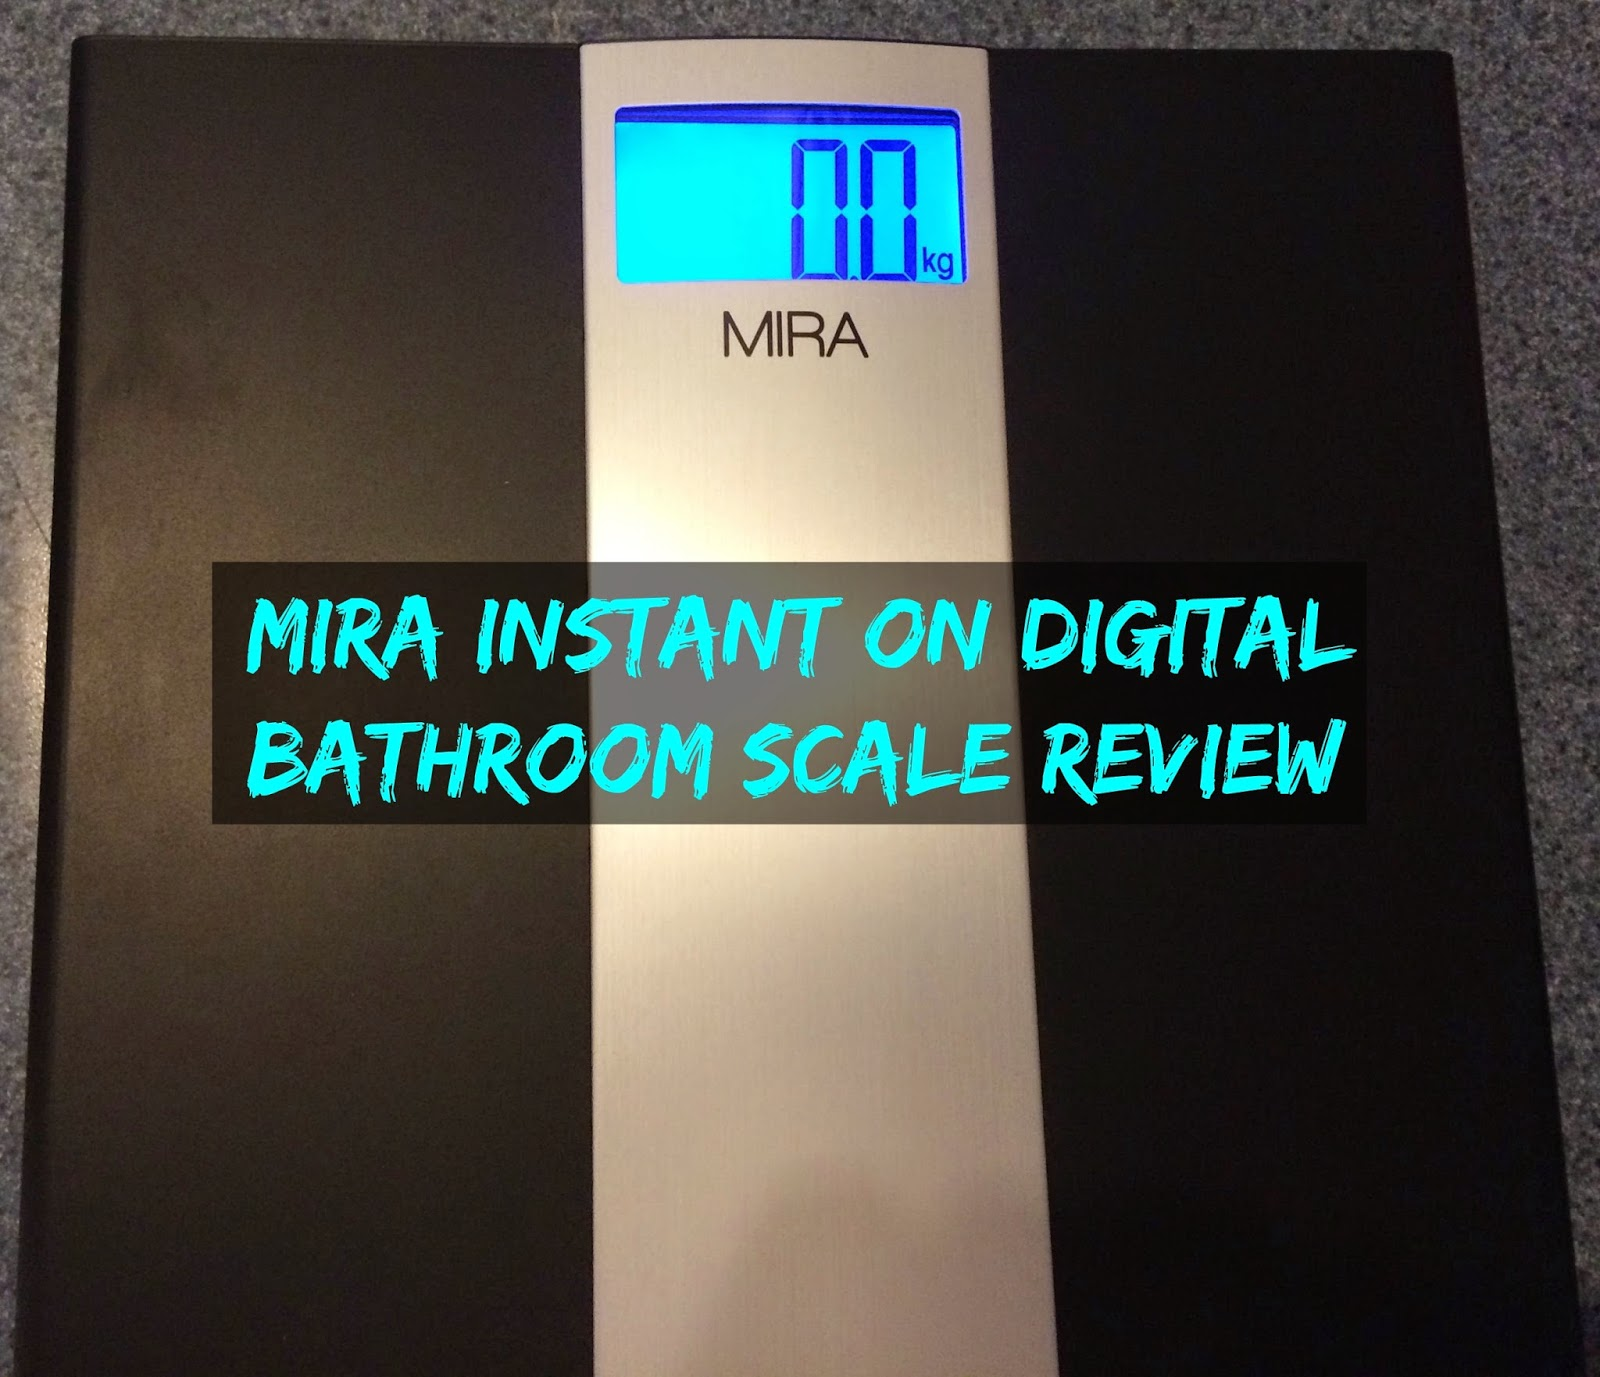 Mira Instant On Digital Bathroom Scale